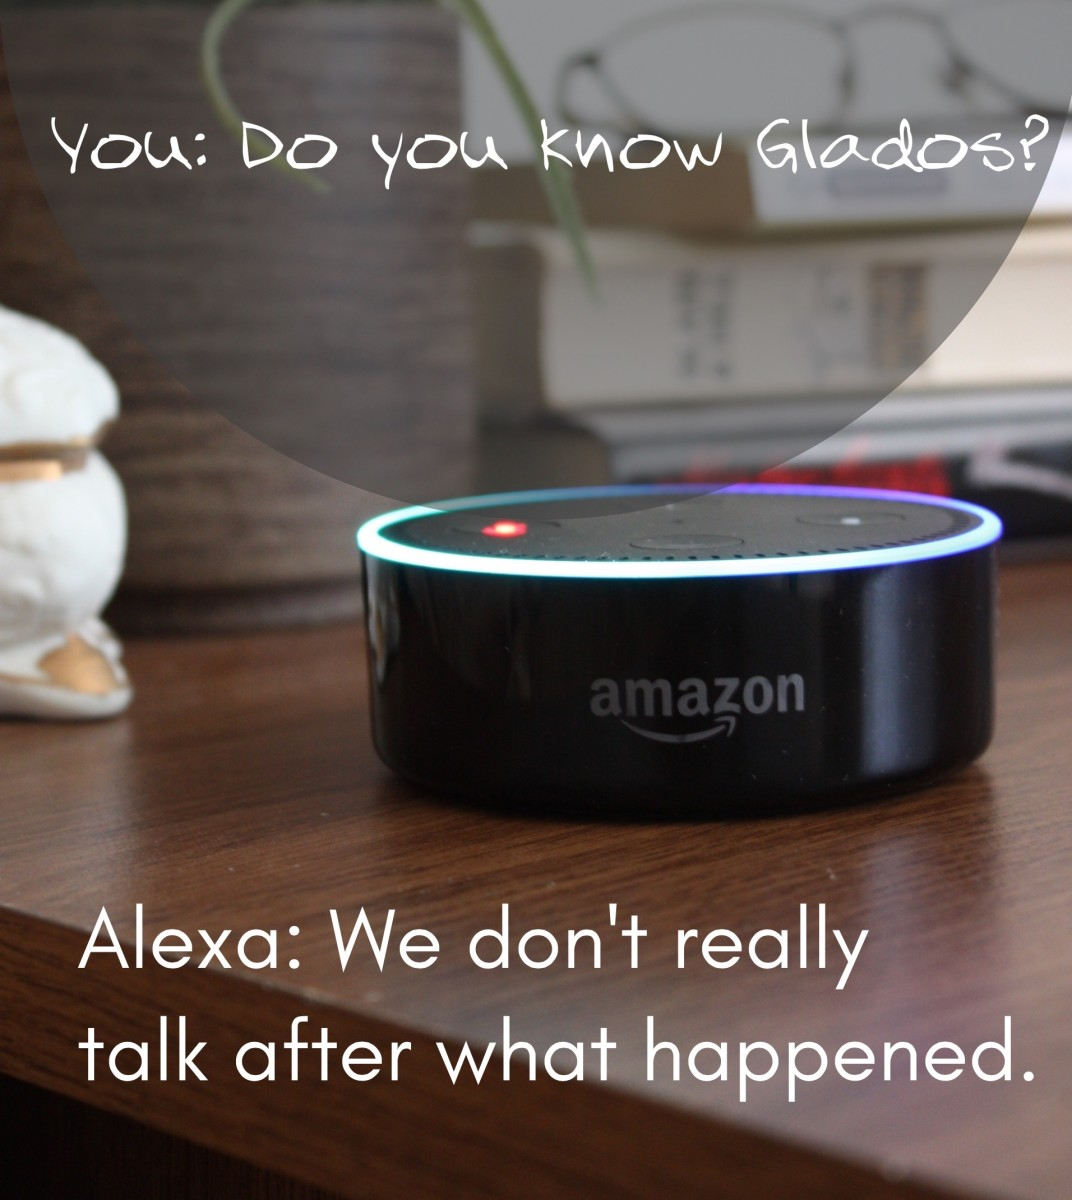 200+ Funny Amazon Alexa Easter Eggs